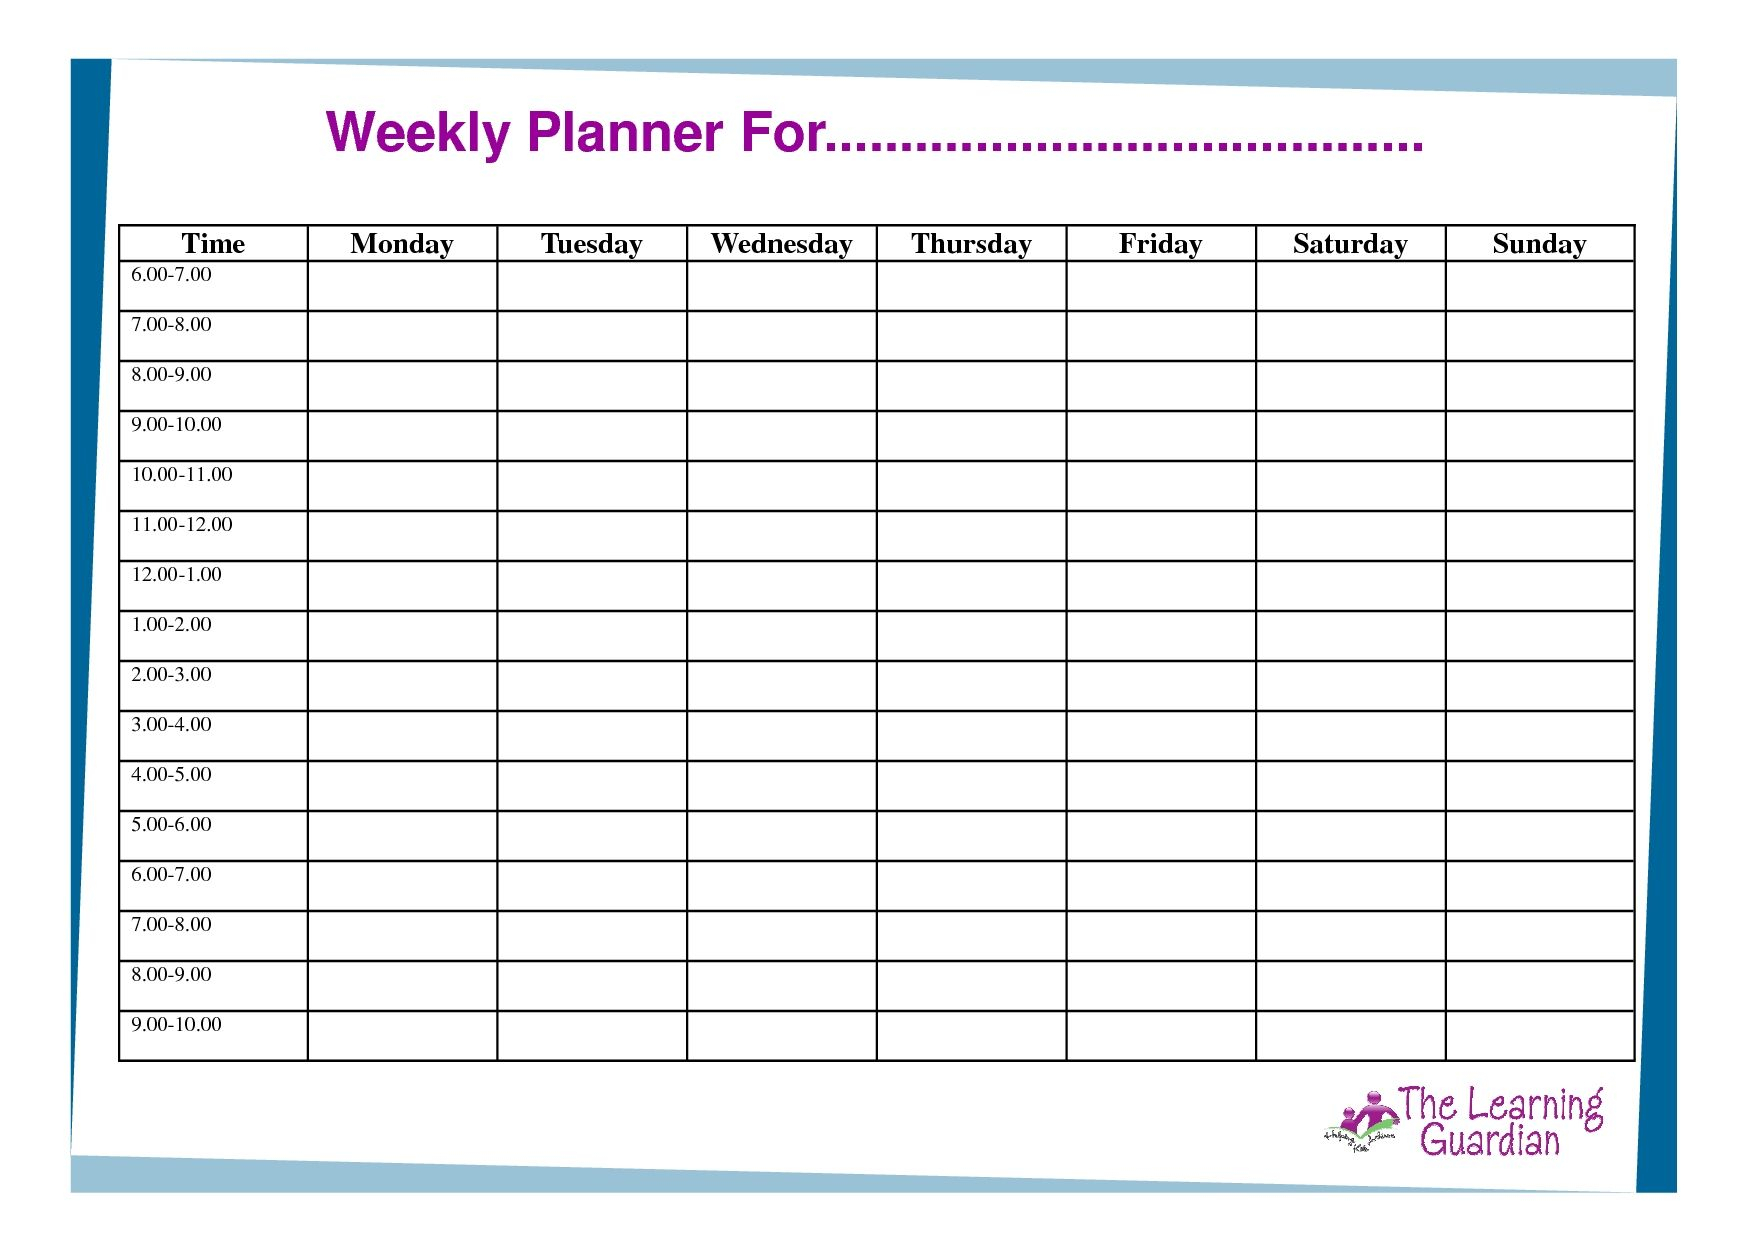 Free Printable Weekly Calendar Templates Weekly Planner For Time with regard to 7 Day Weekly Planner Template Printable